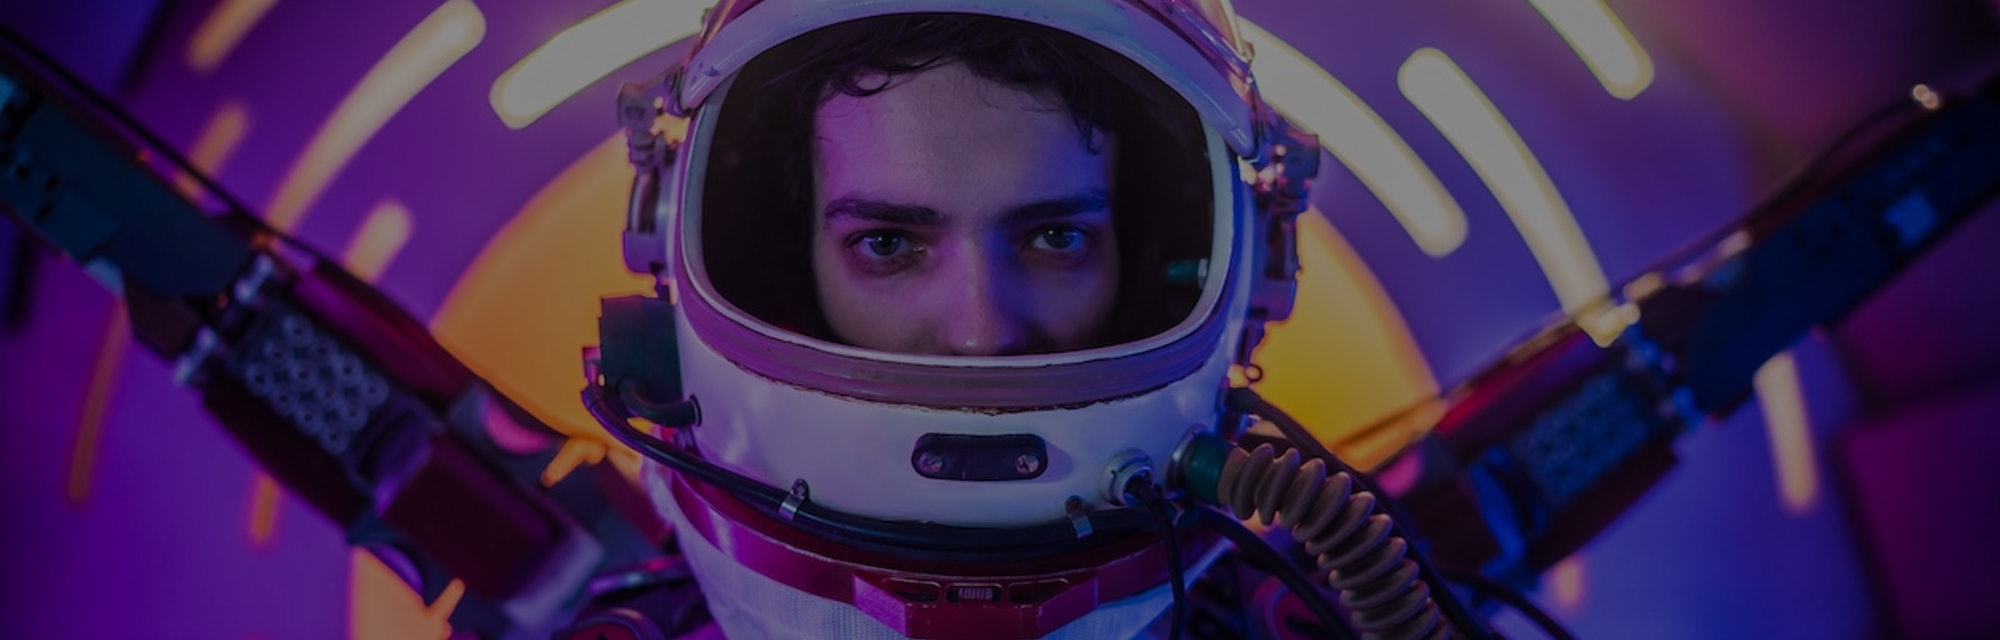 '2067' review: The best time travel movie since 'Avengers: Endgame'